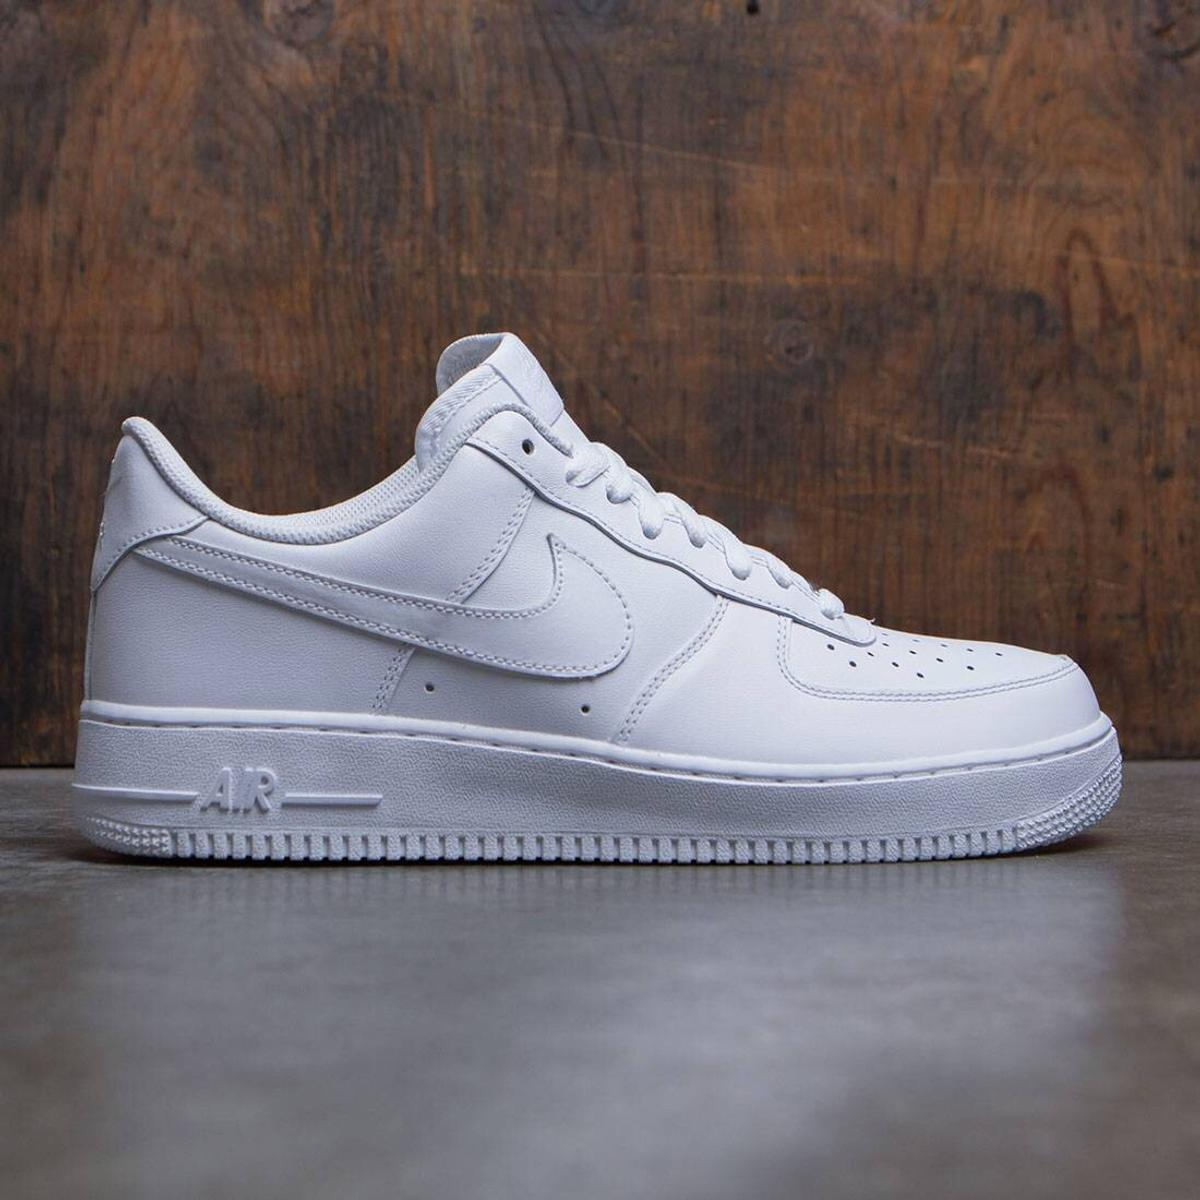 White Sale 00 Force For £45 Shpock Dudley Air 1 Dy2 Nike In 3SqARcL45j